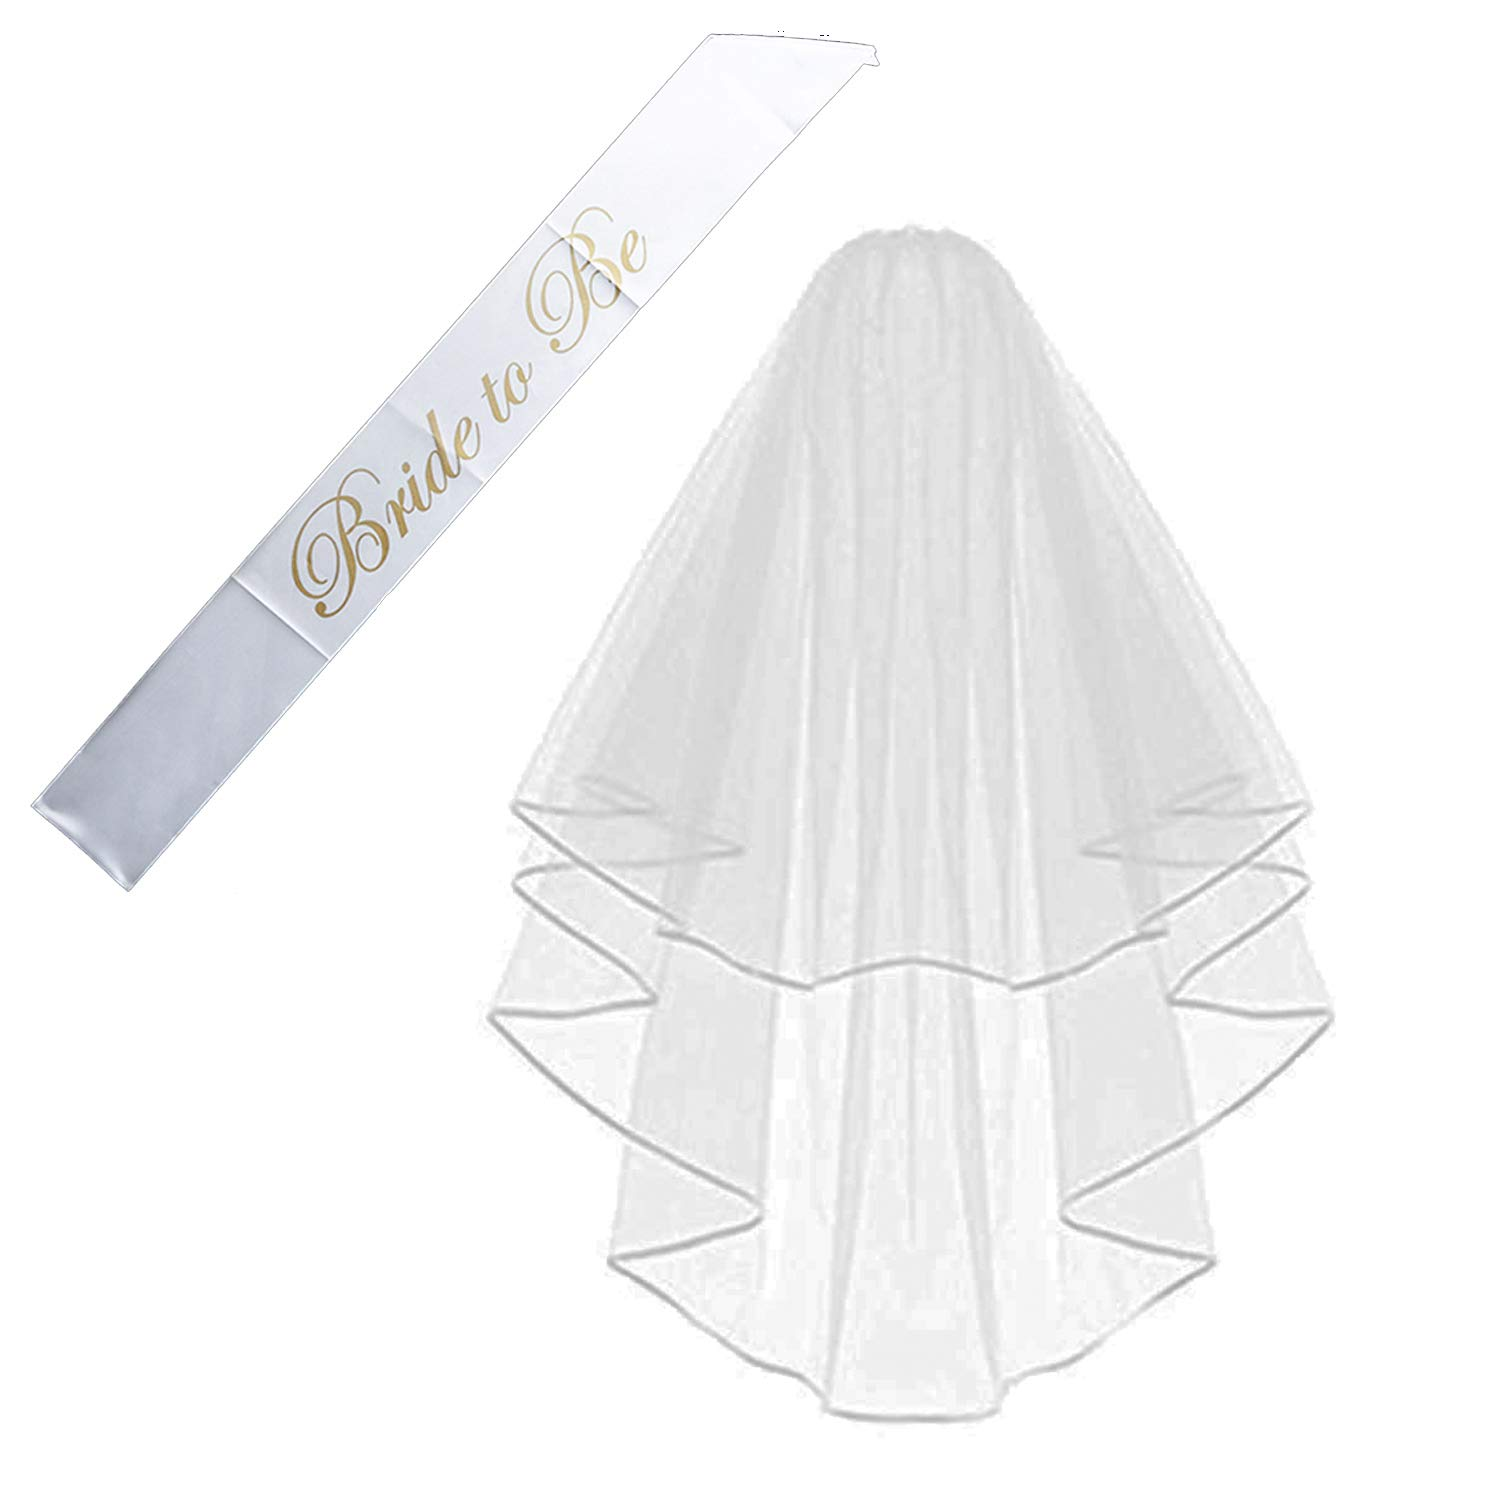 qnprt Bride to be Decoration Set for Bachelorette Party Supply (One Size, Veil+Sash)